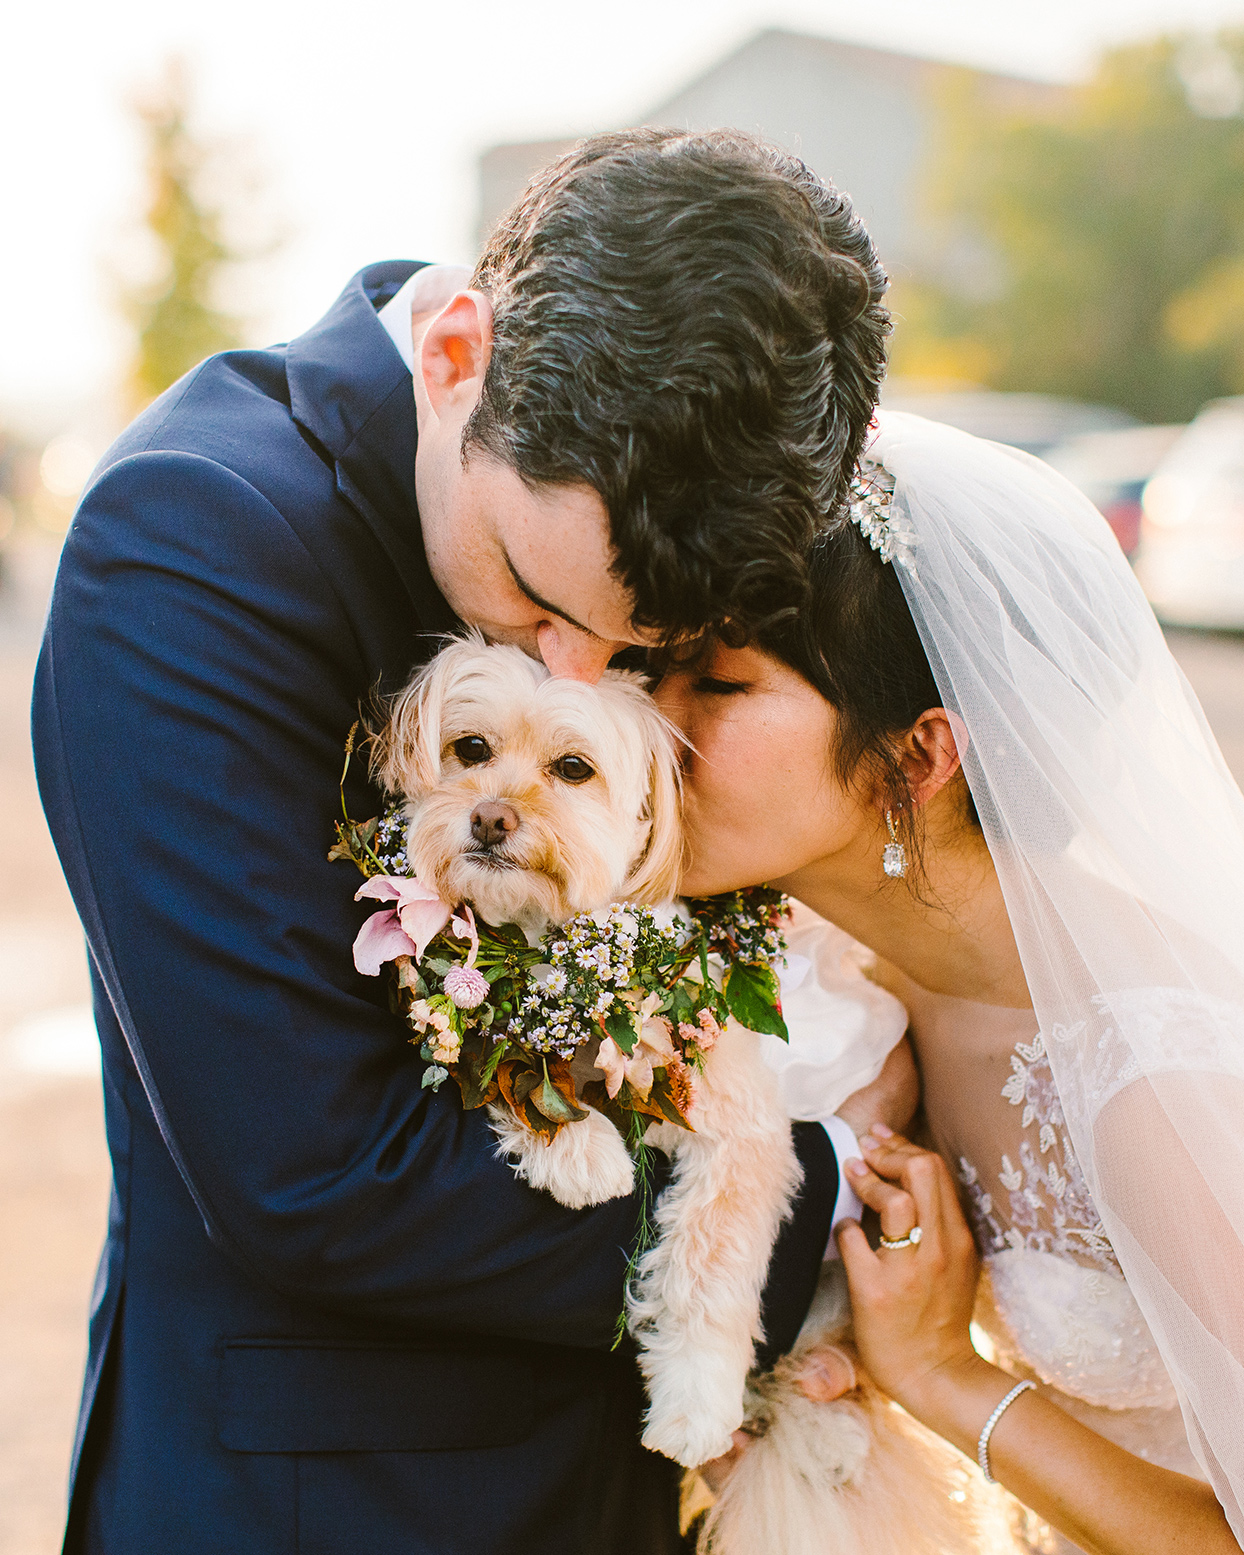 wedding couple embracing dog wearing floral wreath